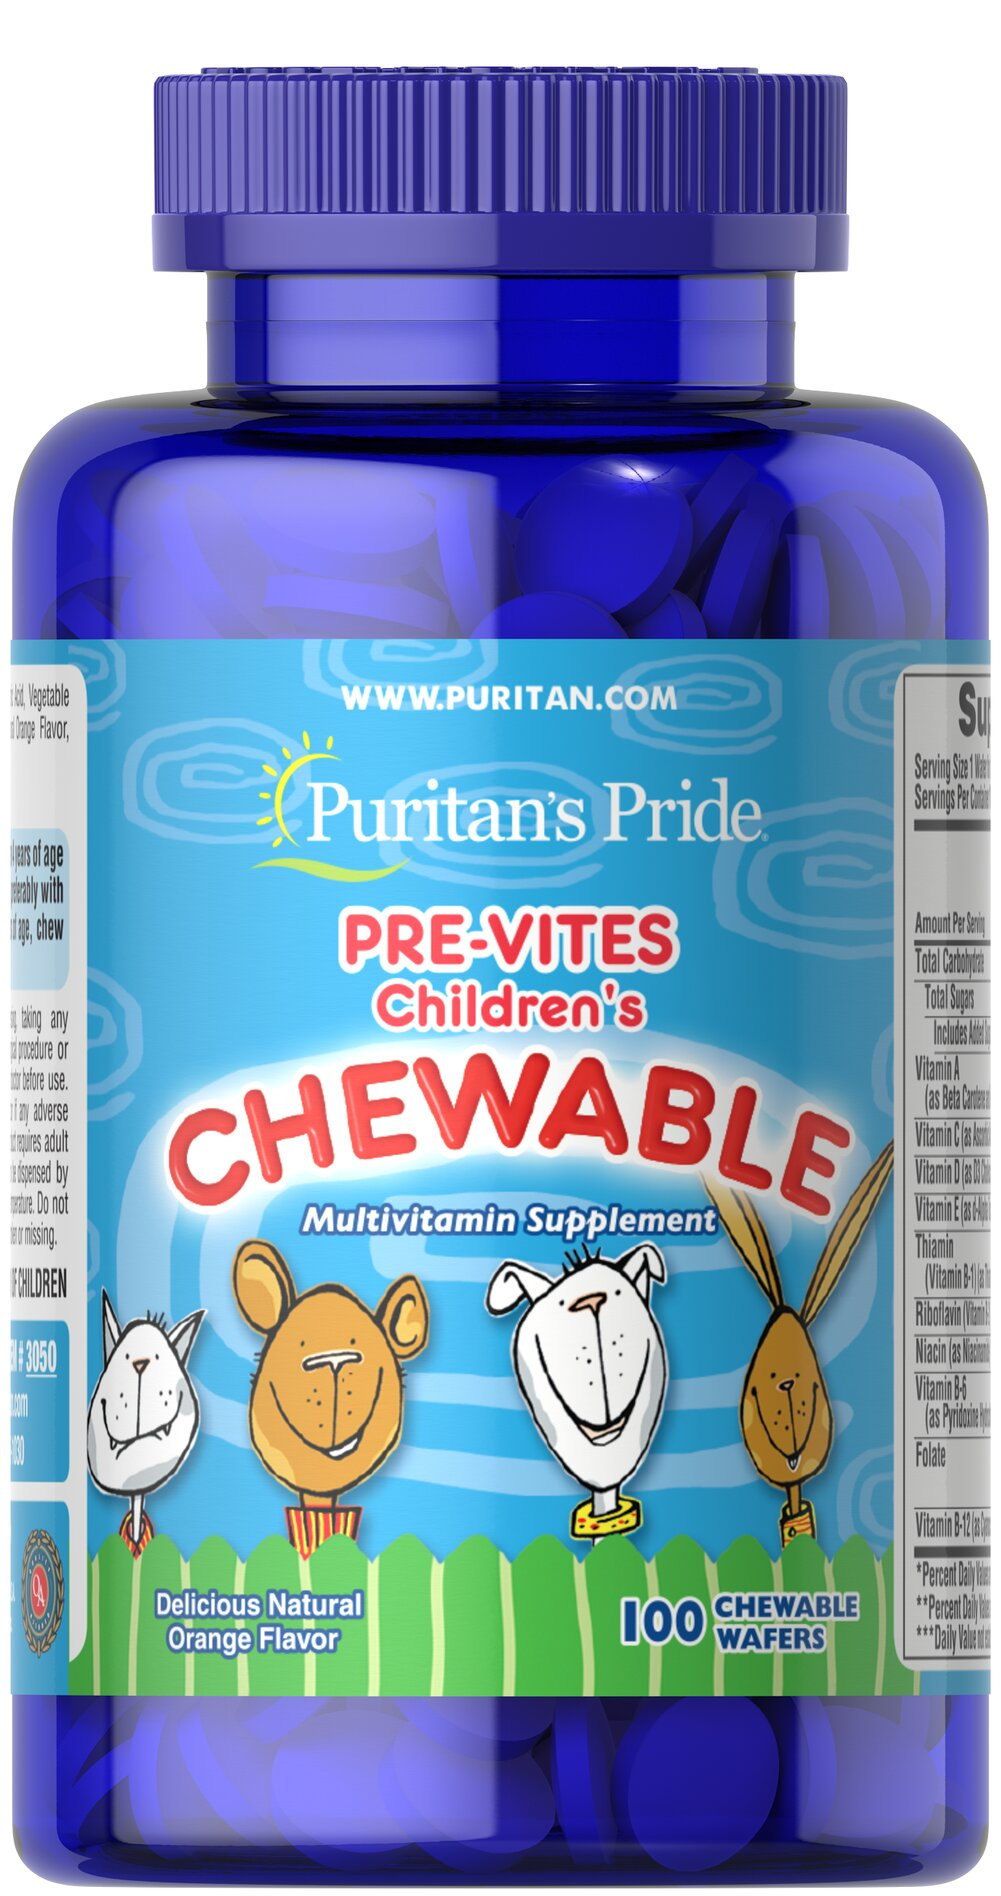 Pre-Vites Children's Multivitamin Thumbnail Alternate Bottle View